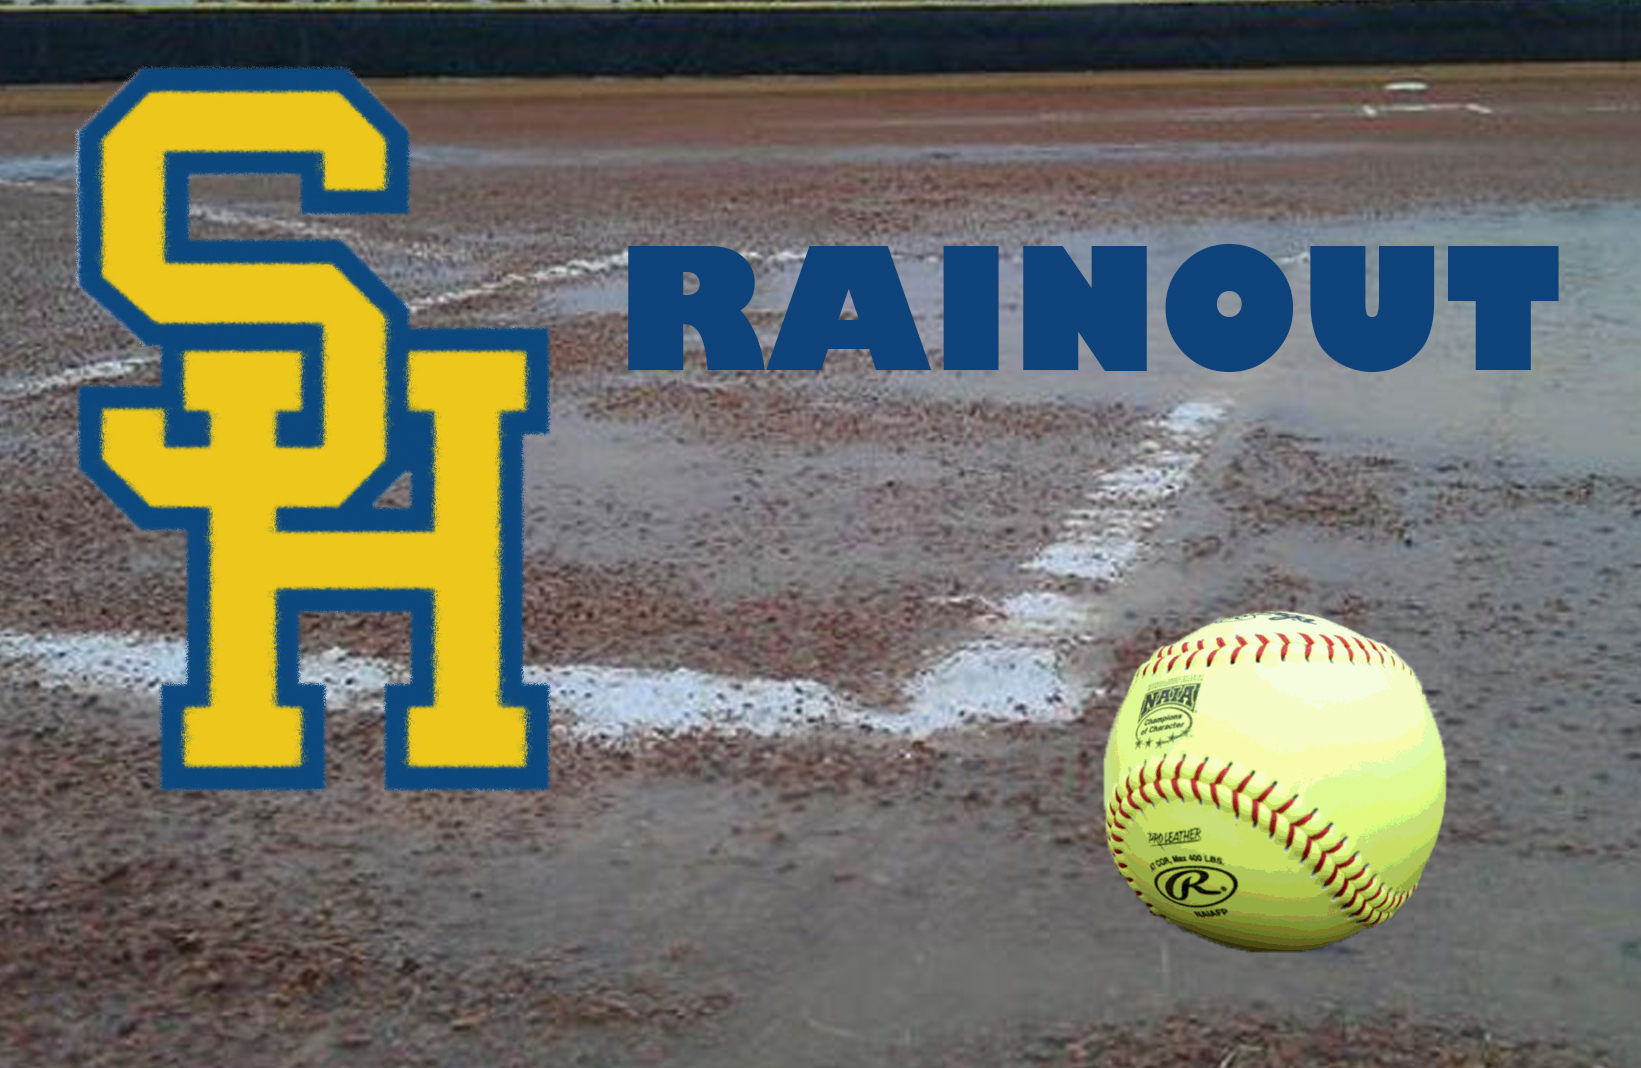 Opening Weekend of Softball Season Washed Out